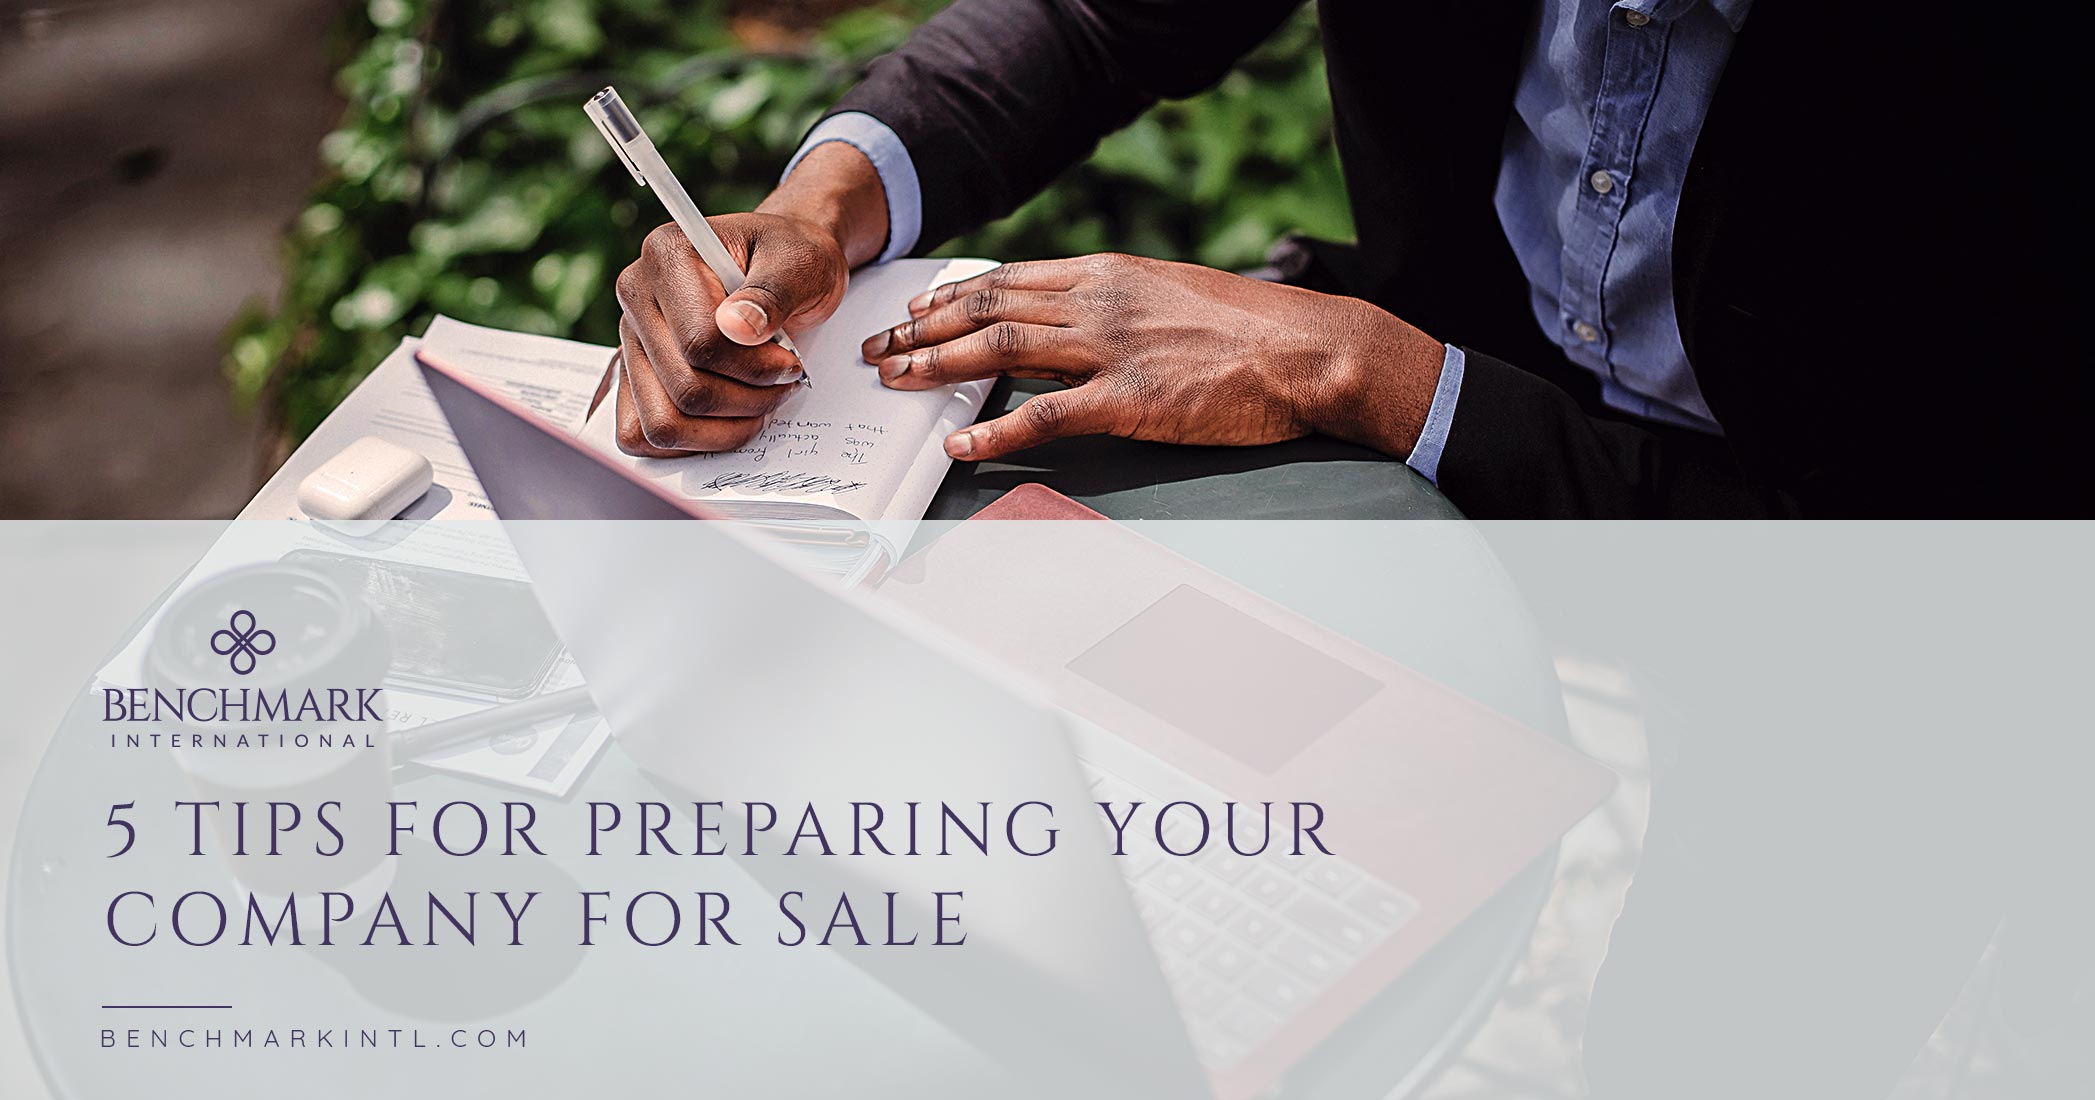 5 Tips For Preparing Your Company For Sale